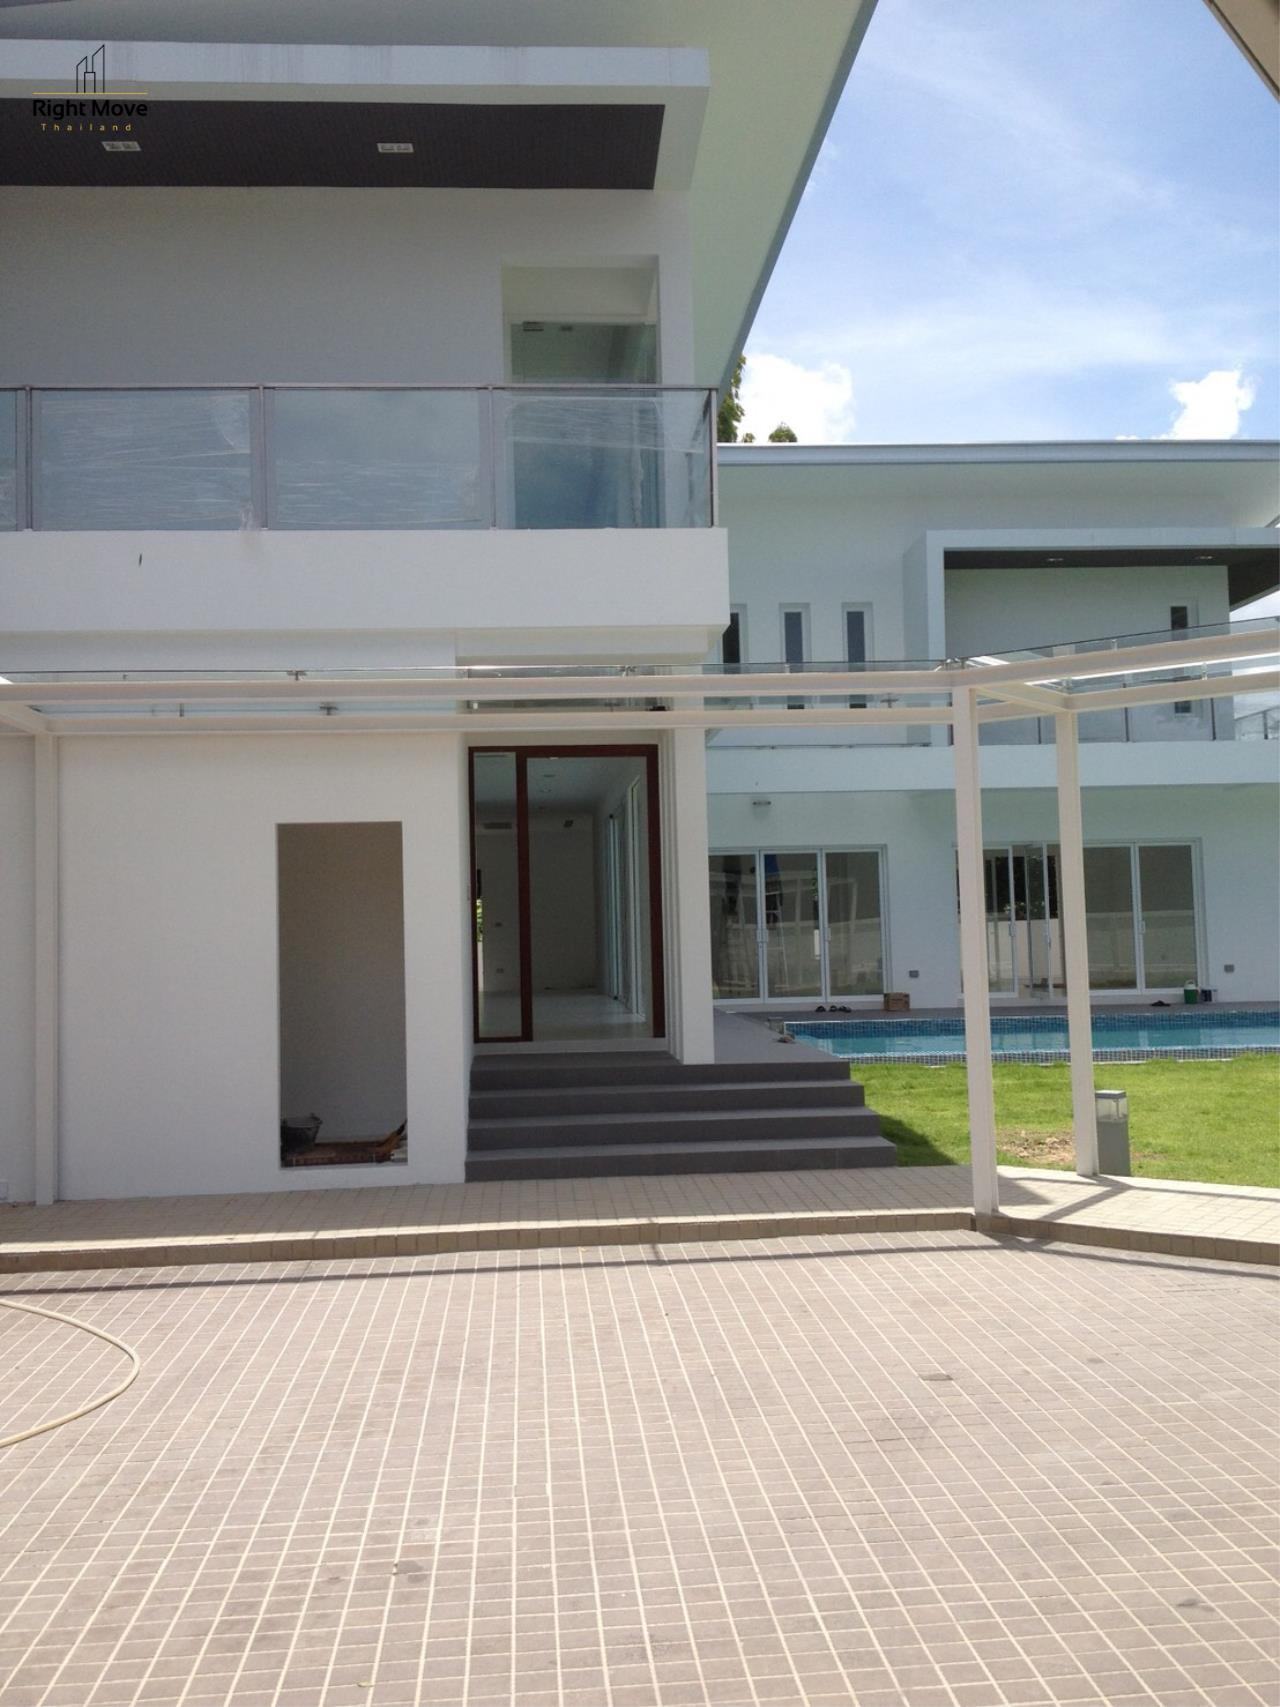 Right Move Thailand Agency's HR963 House with private pool - For Rent 180,000 THB 4 Bedrooms 450 Sqm 200 Sqw 4